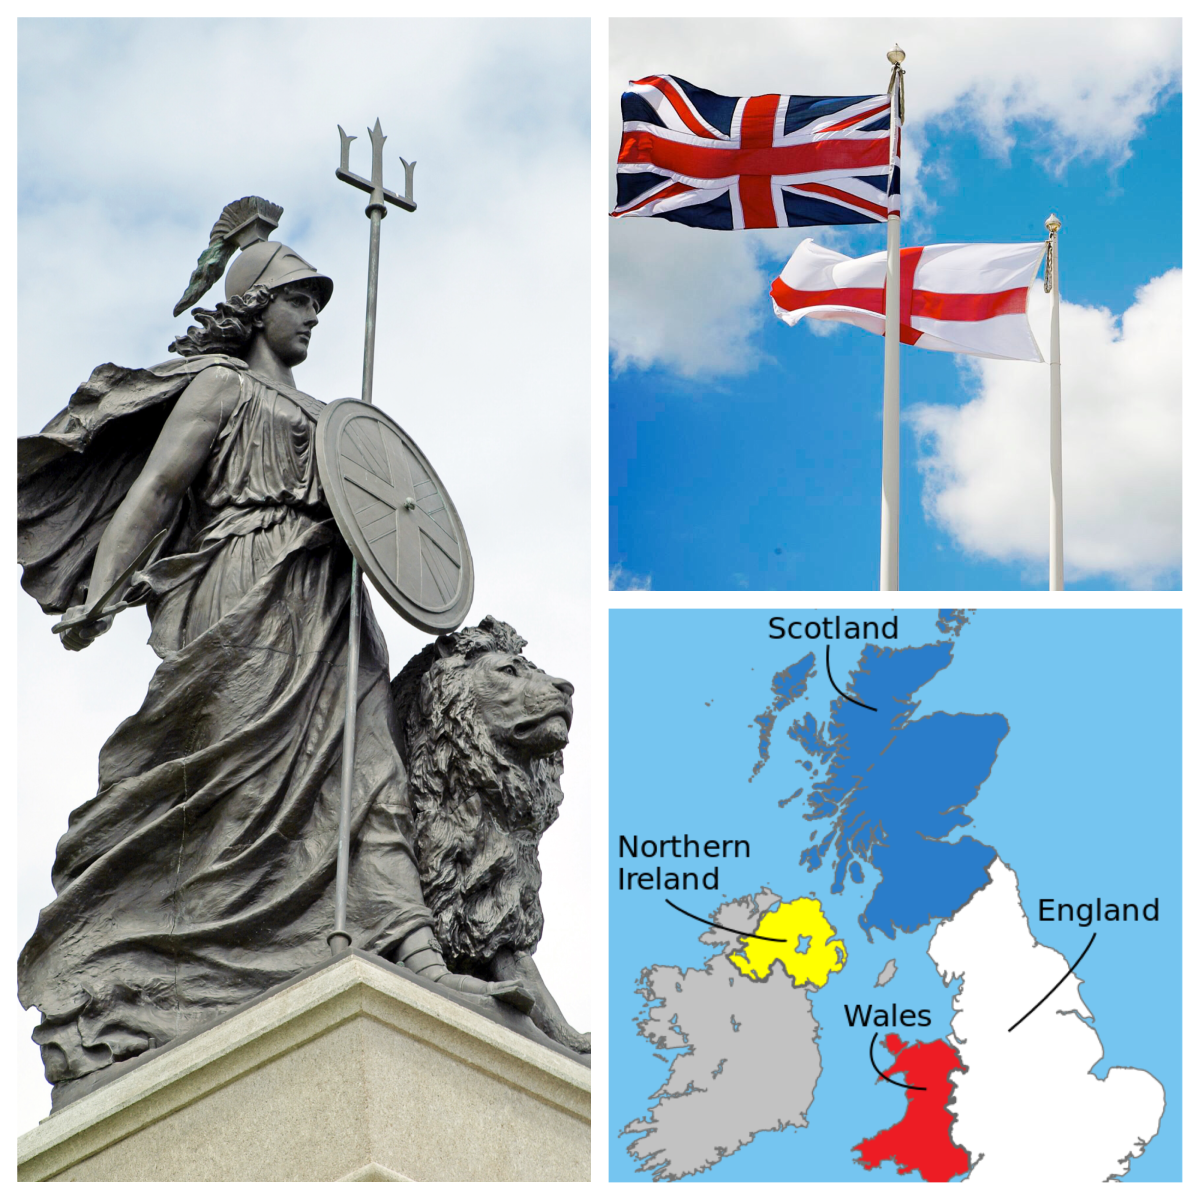 A Britannia sculpture, the flags of the UK and England, and a map of the United Kingdom